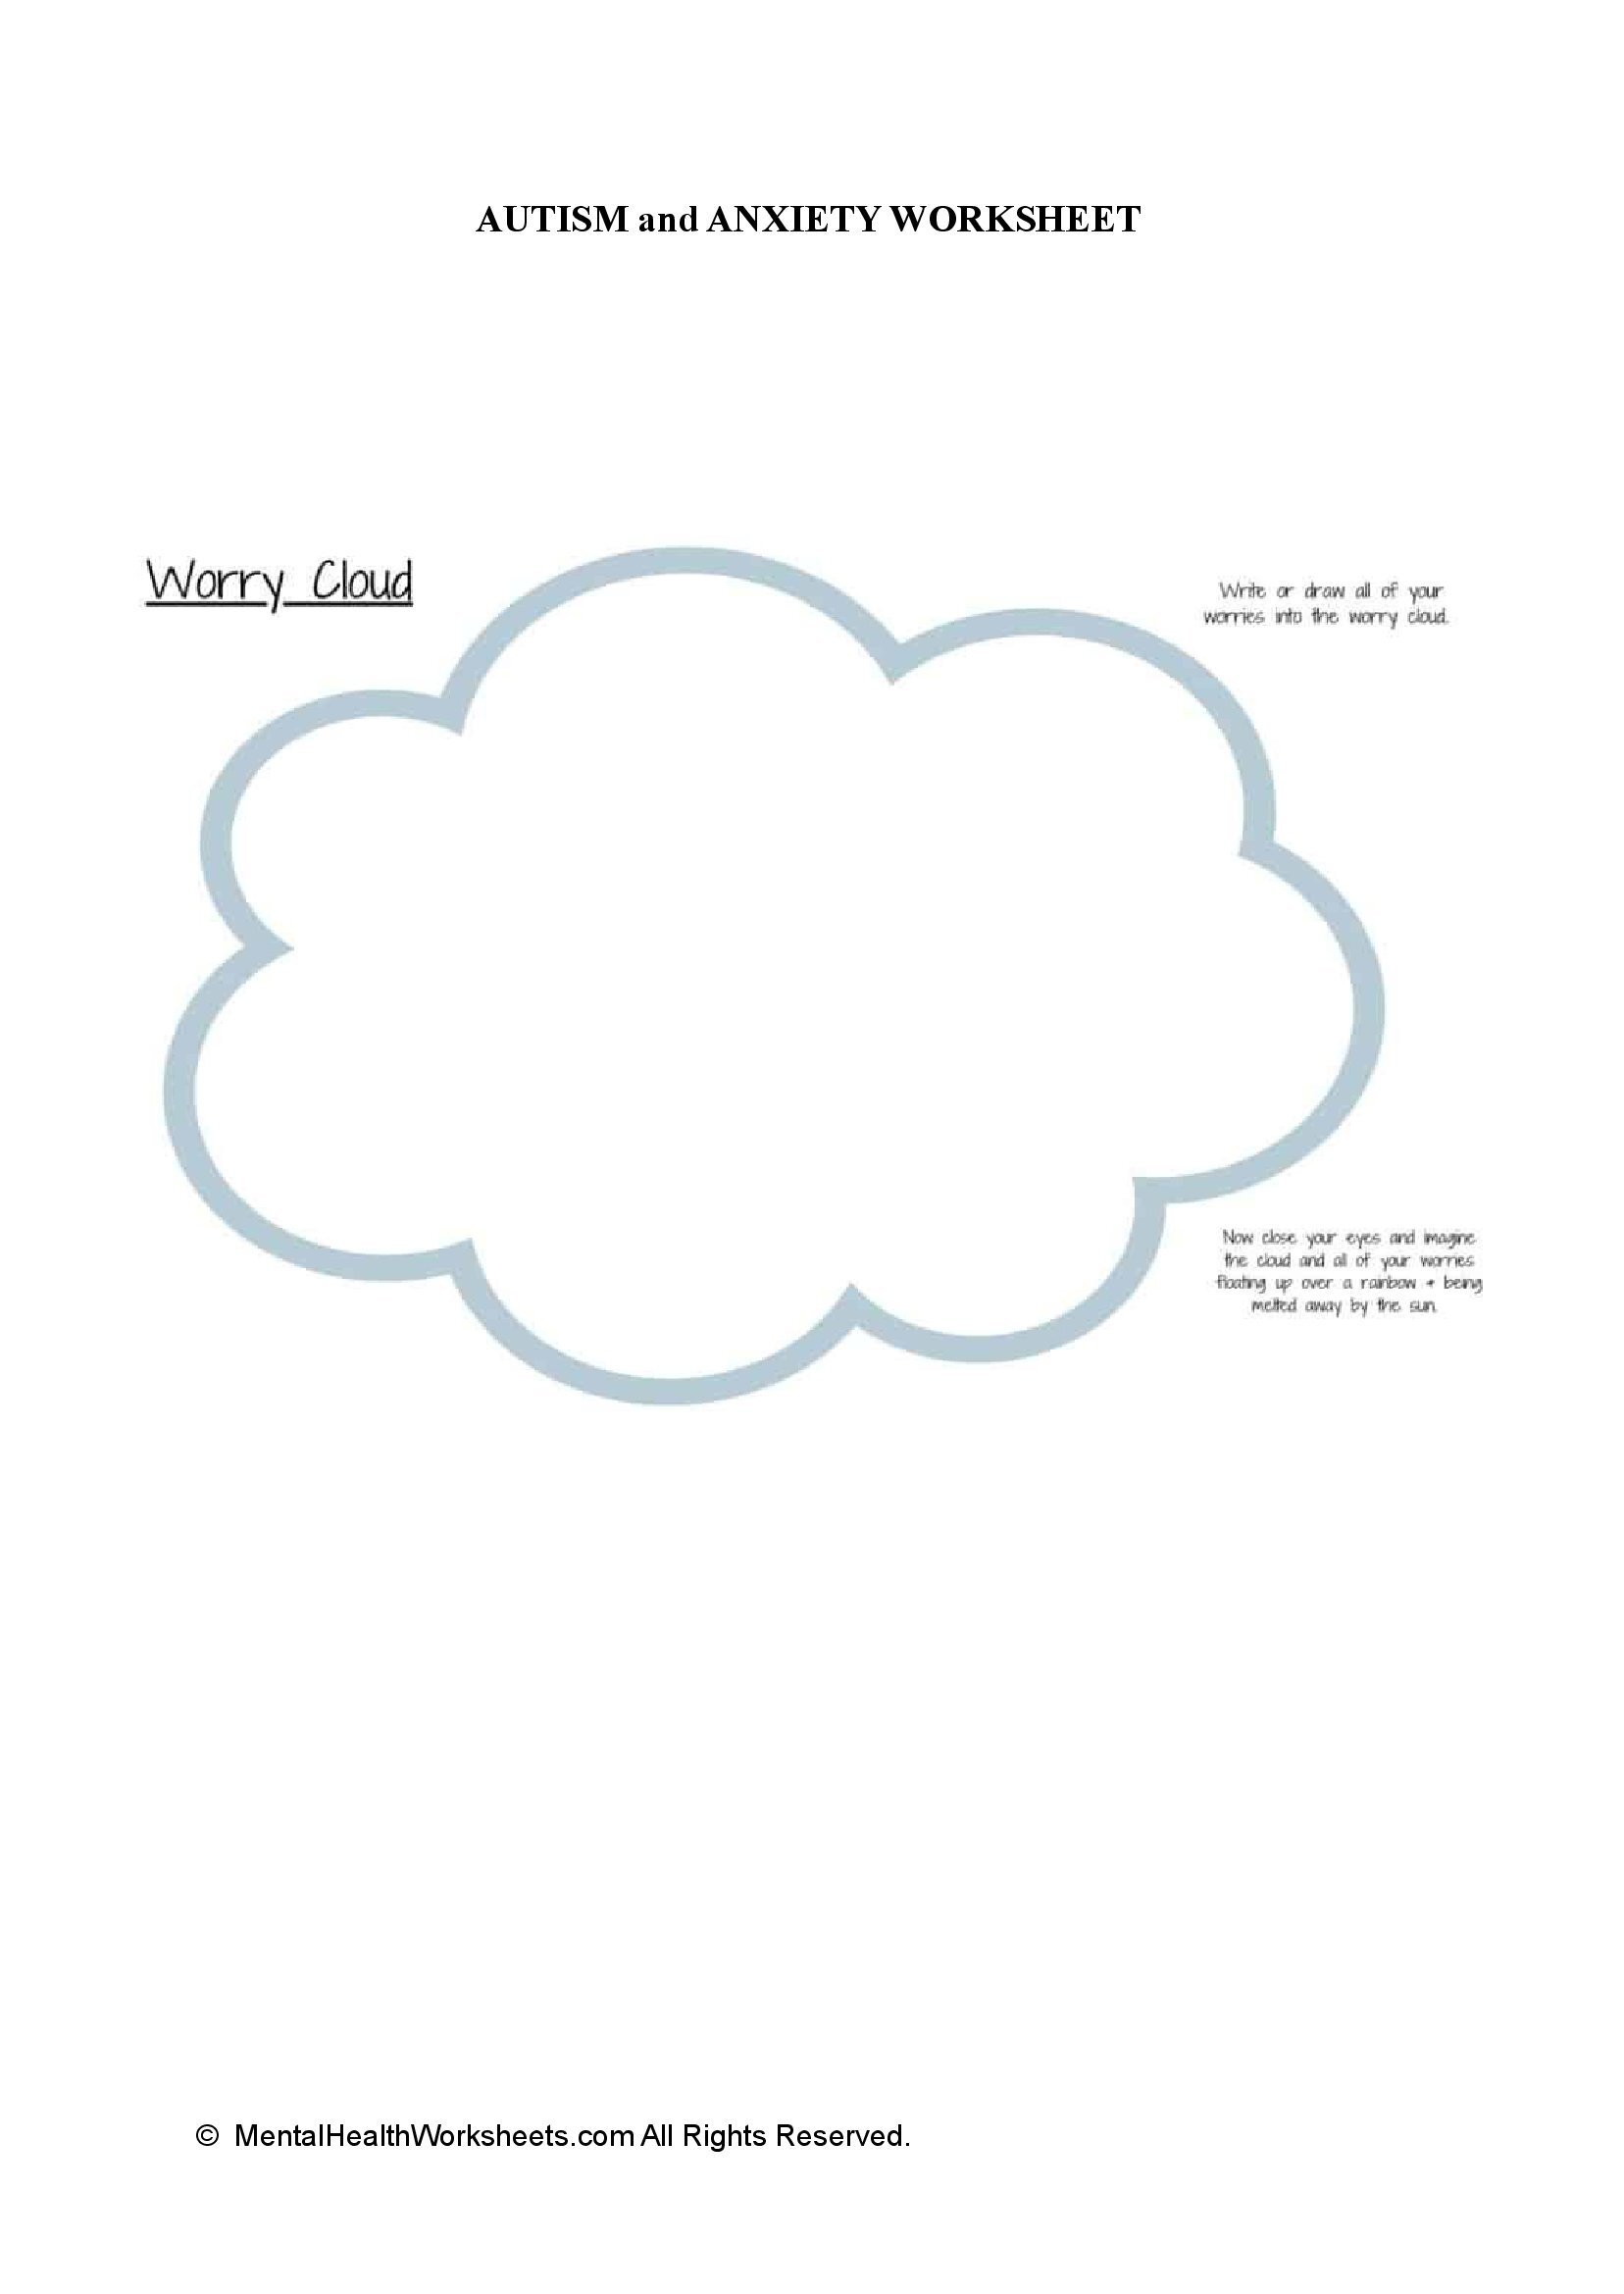 AUTISM and ANXIETY WORKSHEET:Version 2